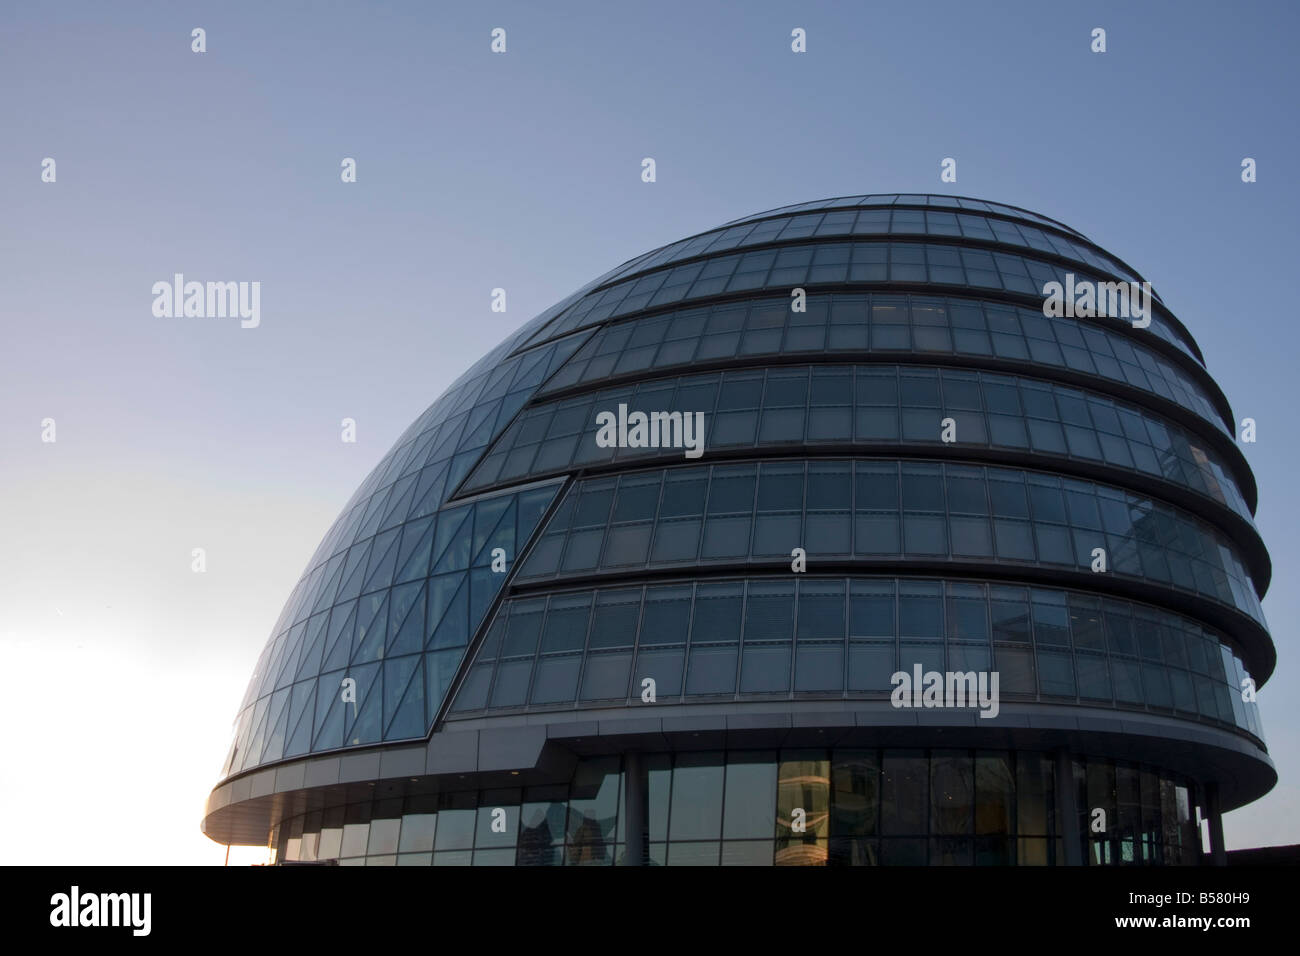 City Hall (London Assembly building) on Queens Walk, London, England, United Kingdom, Europe - Stock Image